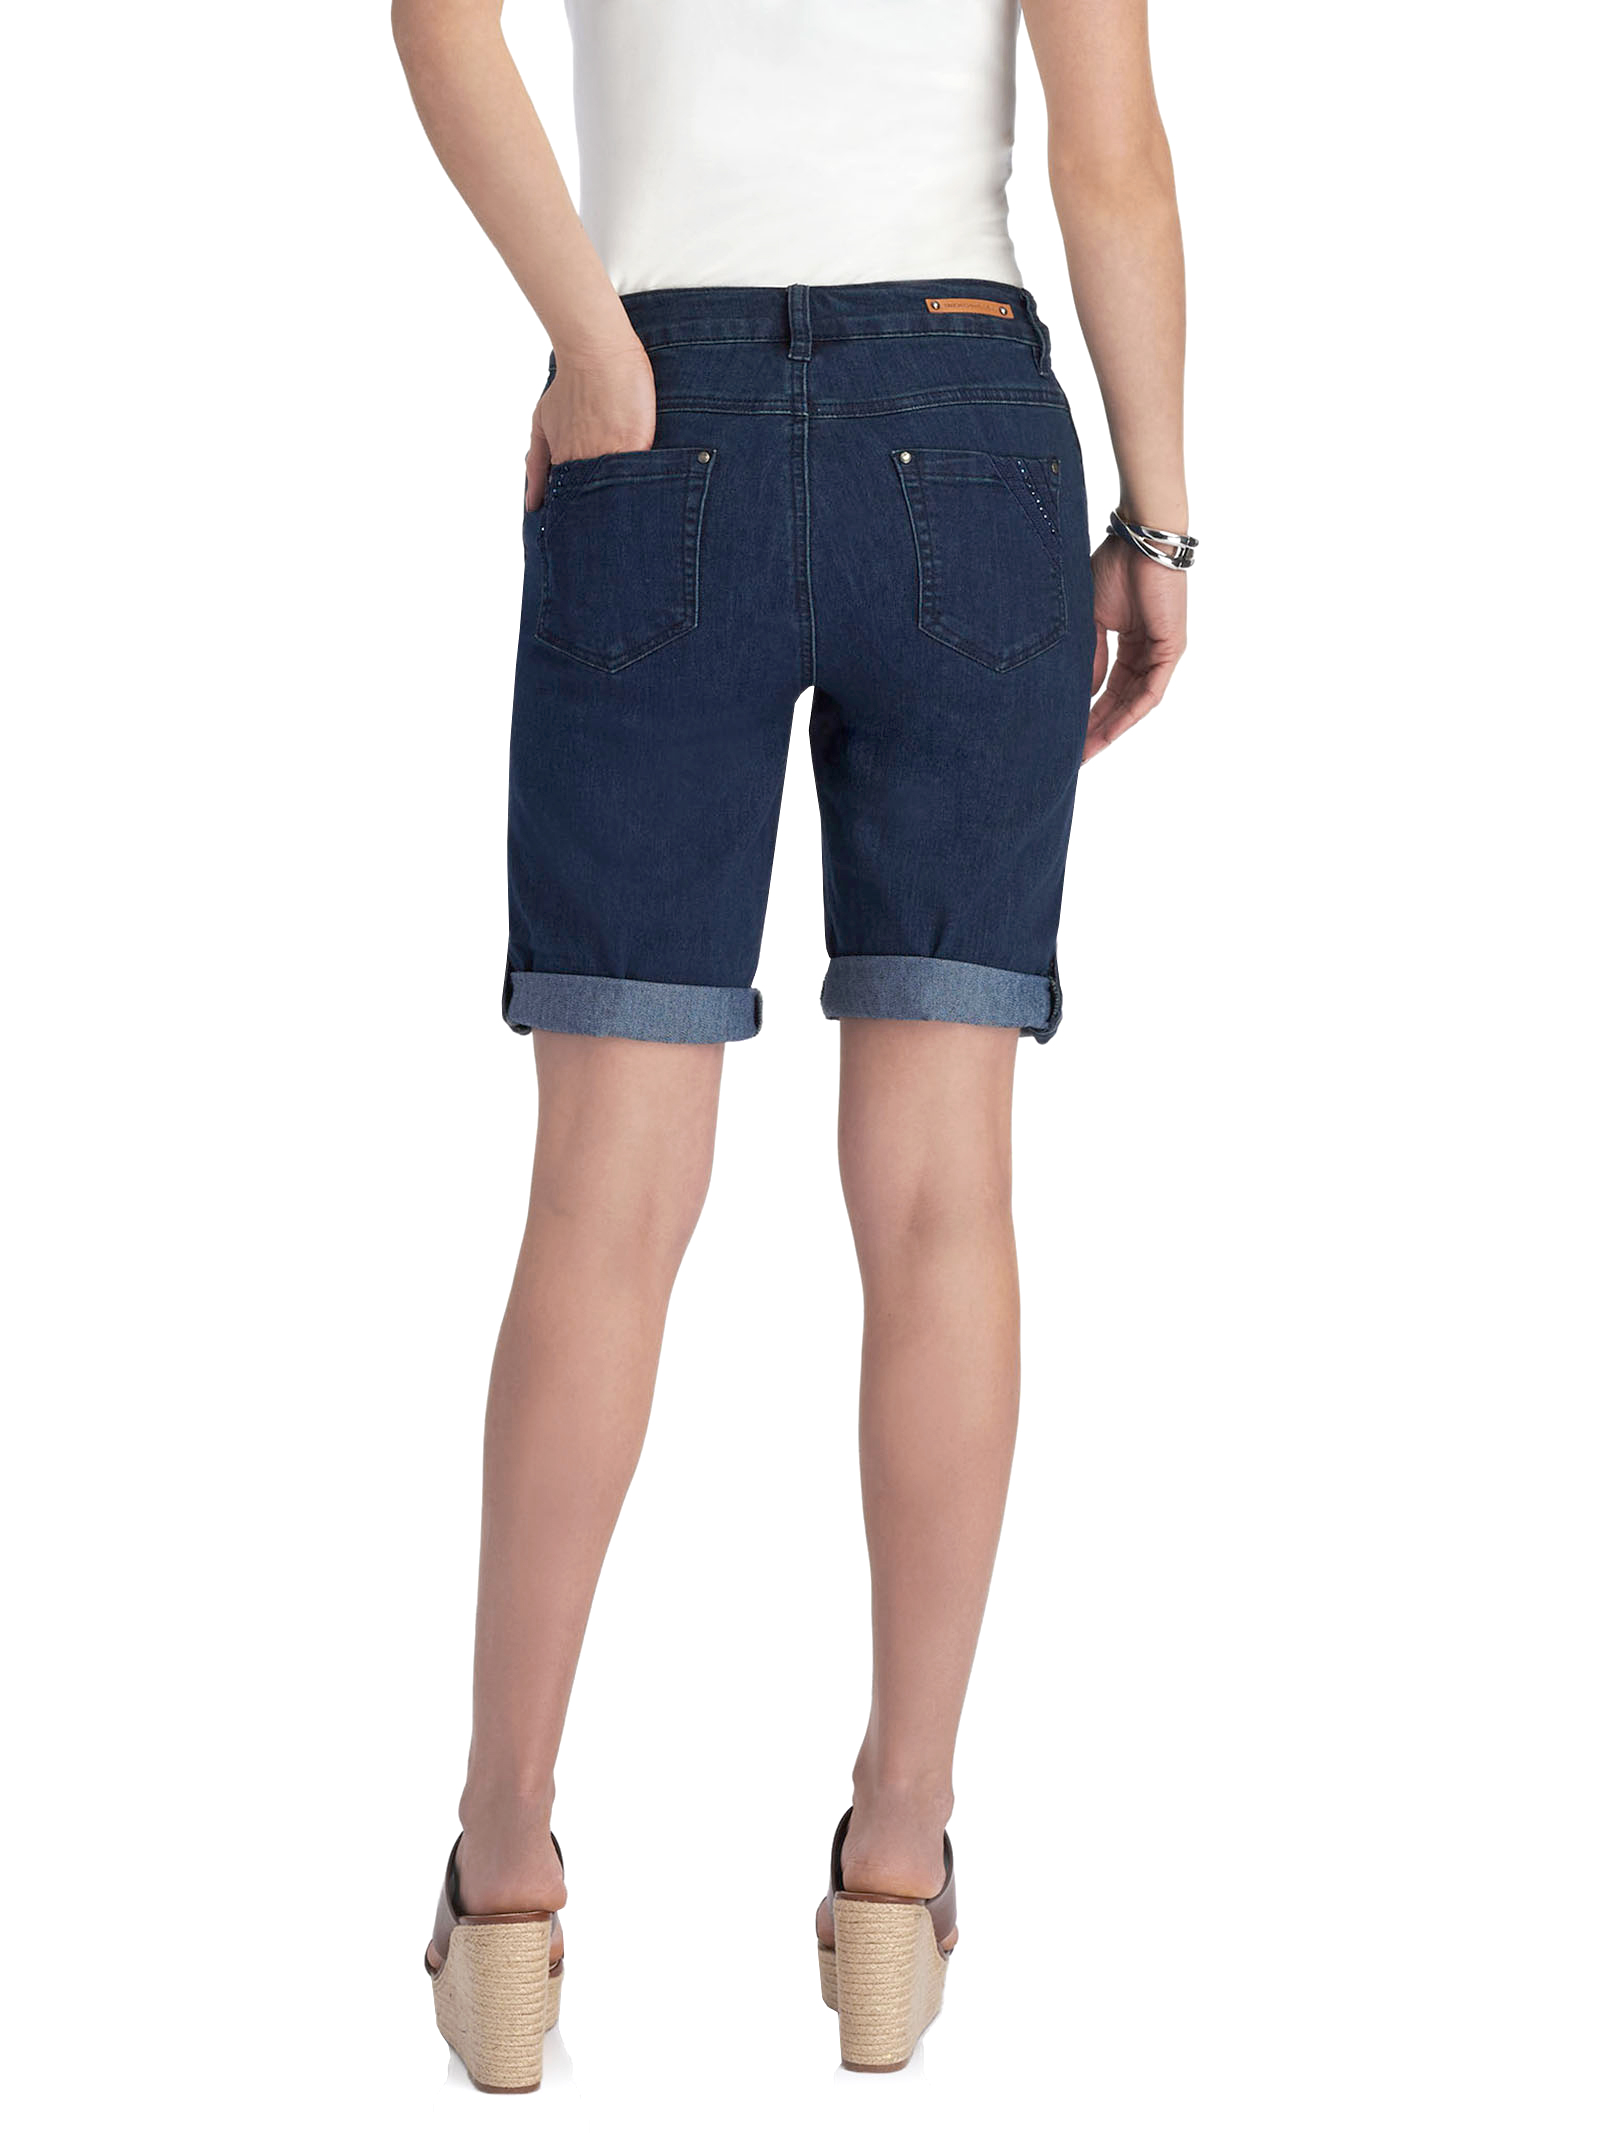 Simon Chang Denim Capri Shorts, Blue, hi-res